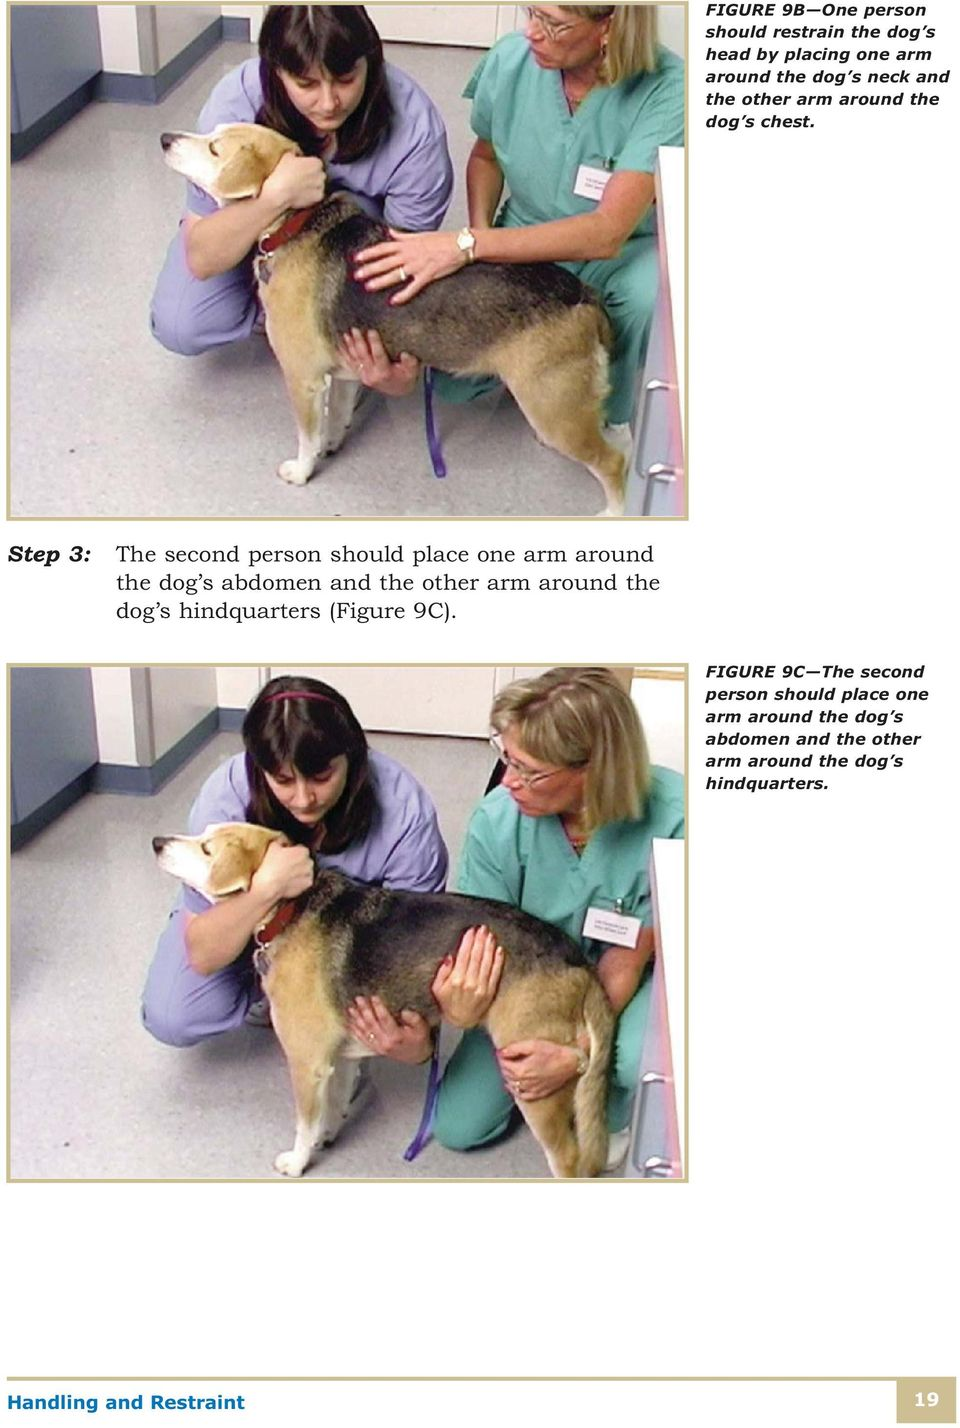 Step 3: The second person should place one arm around the dog s abdomen and the other arm around the